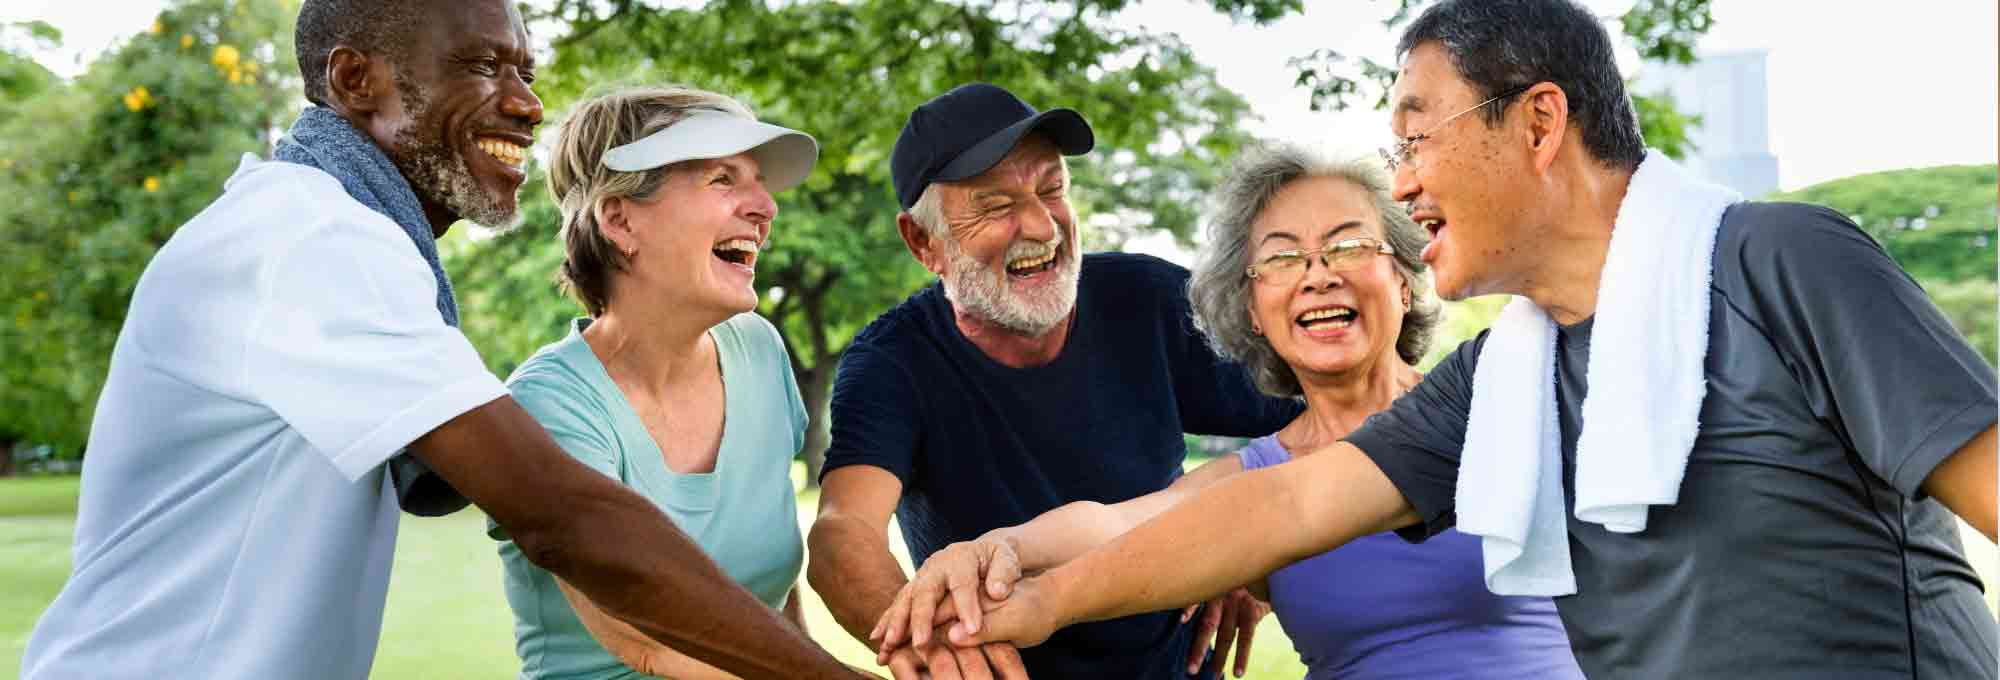 Photograph of five senior citizens enjoying time together in a park.